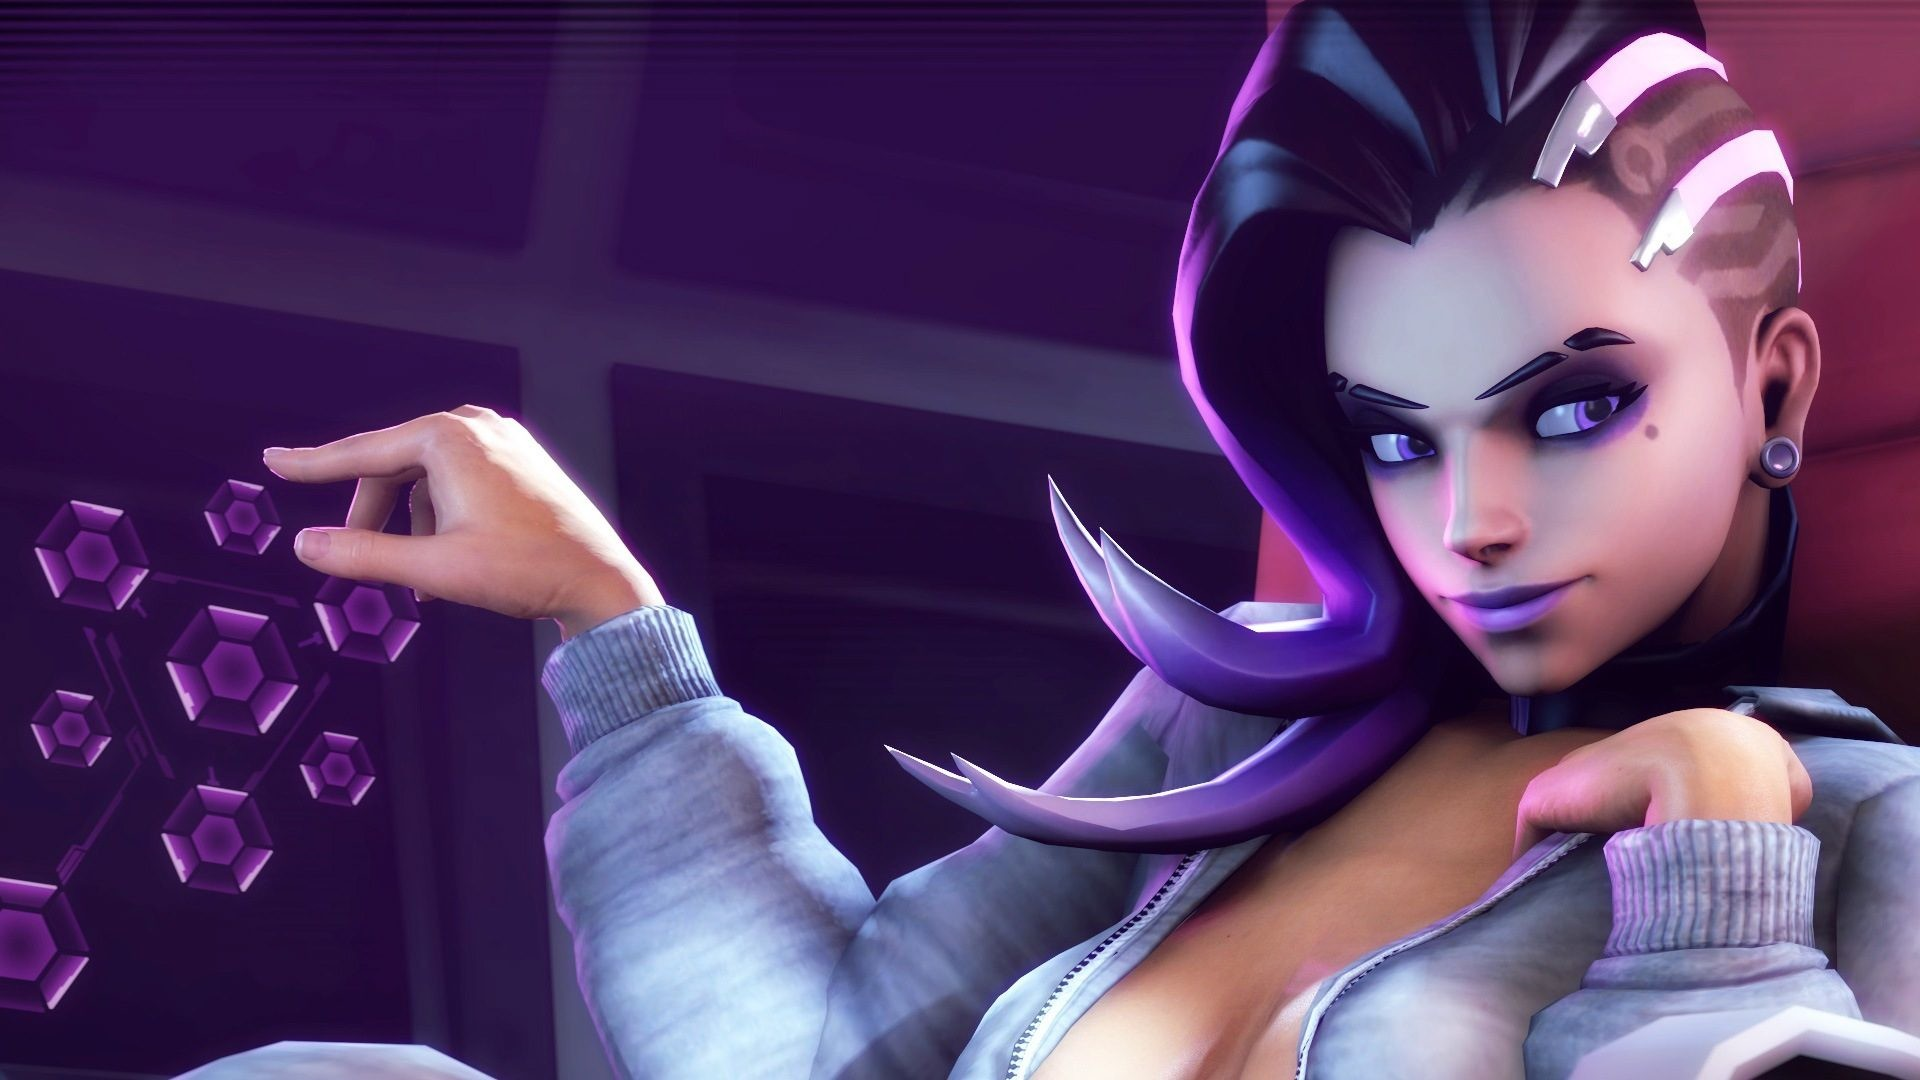 Sombra Sexy Gamegirl is a high definition desktop wallpaper from our  collection of free background images